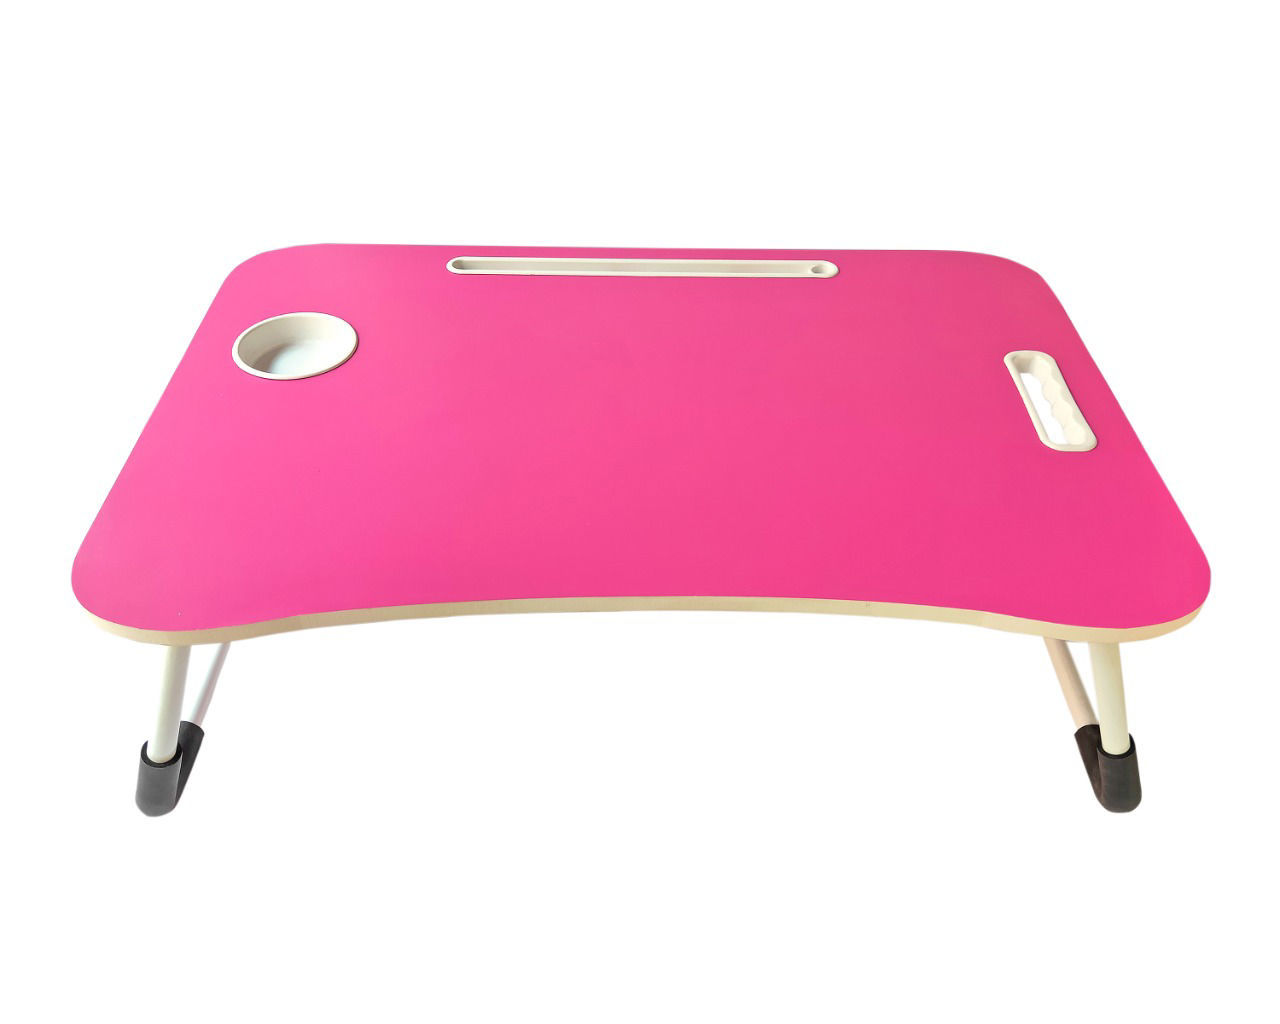 Wooden Bed Table -Pink